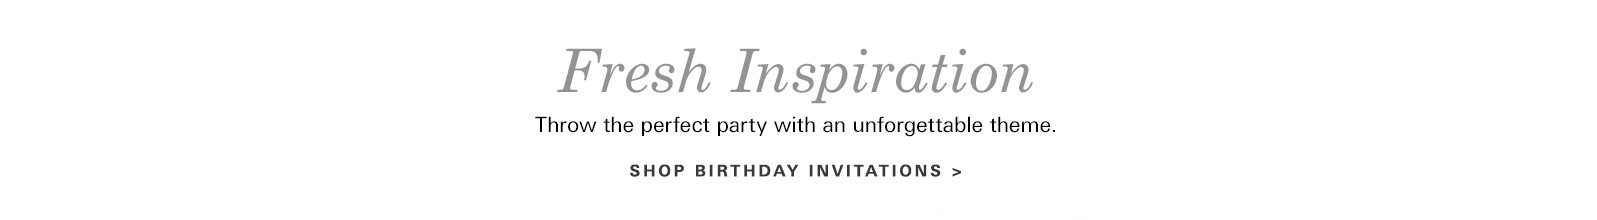 Invitations Announcements Personalized Cards Stationery